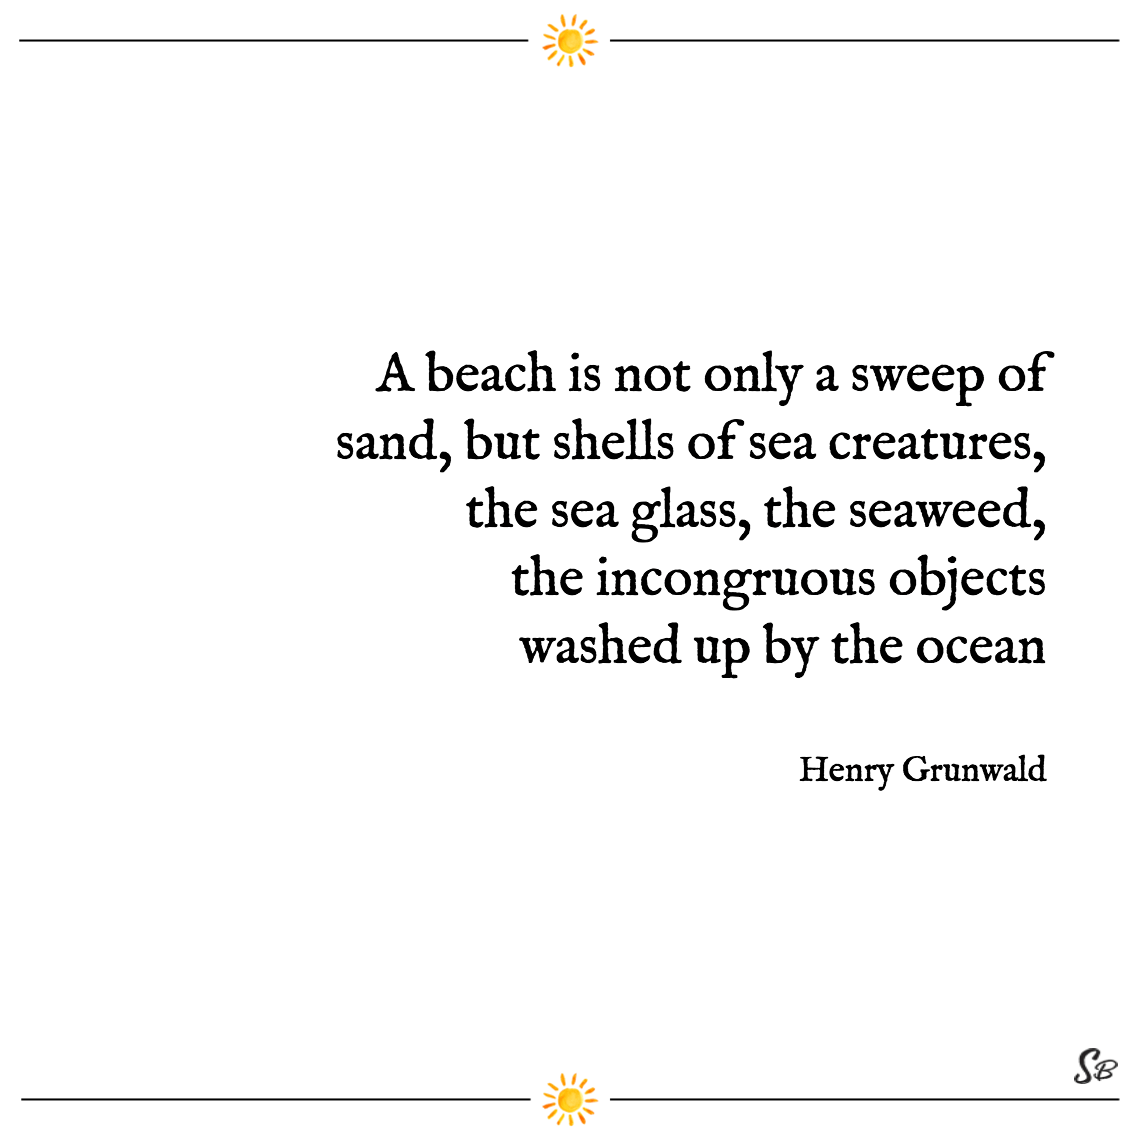 A beach is not only a sweep of sand, but shells of sea creatures, the sea glass, the seaweed, the incongruous objects washed up by the ocean henry grunwald